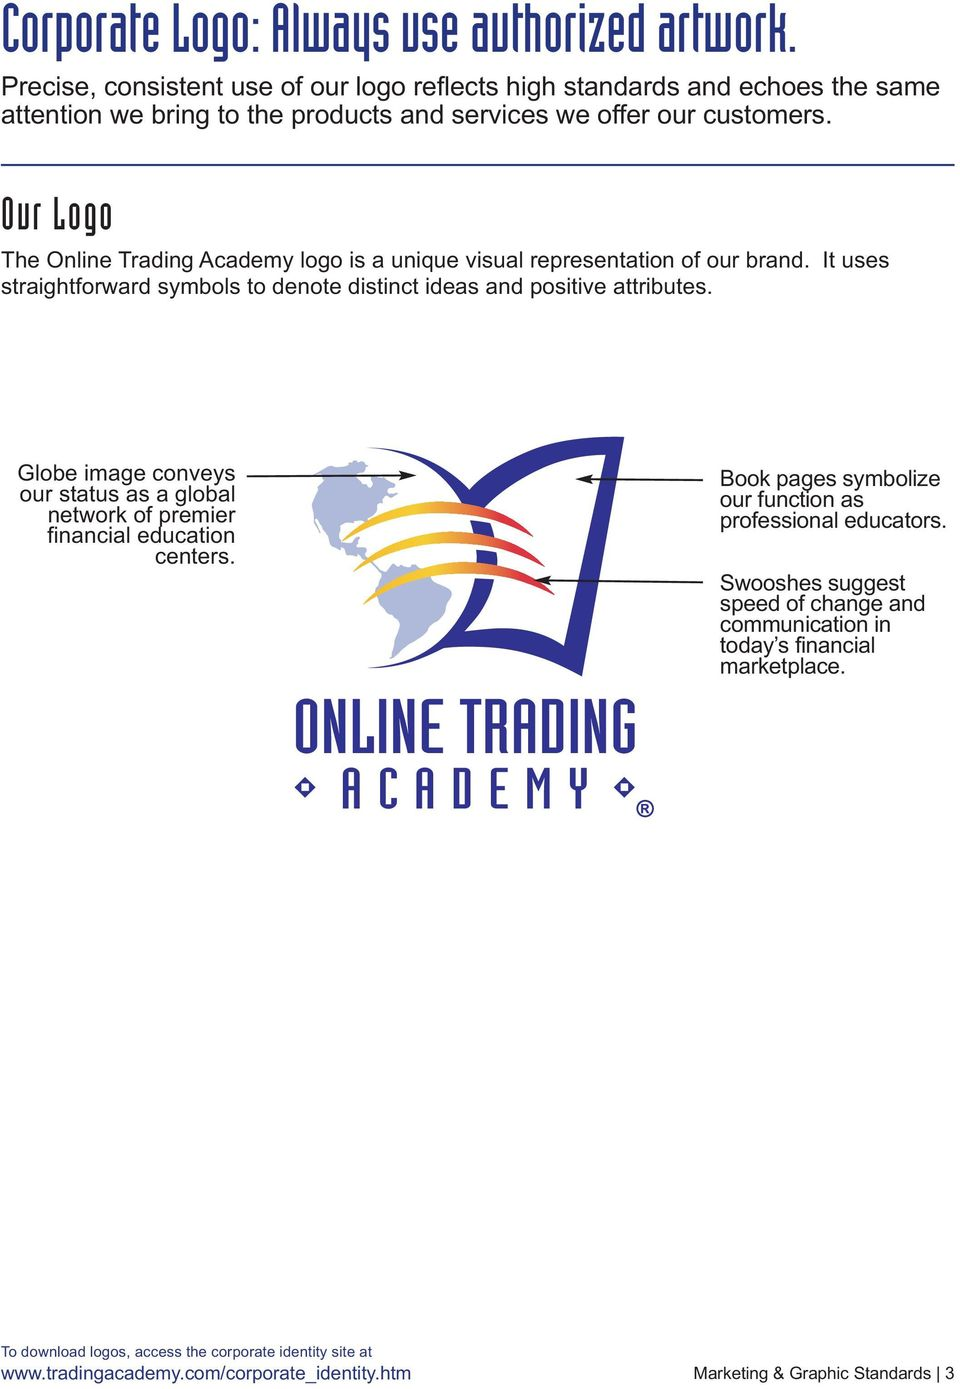 Our Logo The Online Trading Academy logo is a unique visual representation of our brand. It uses straightforward symbols to denote distinct ideas and positive attributes.